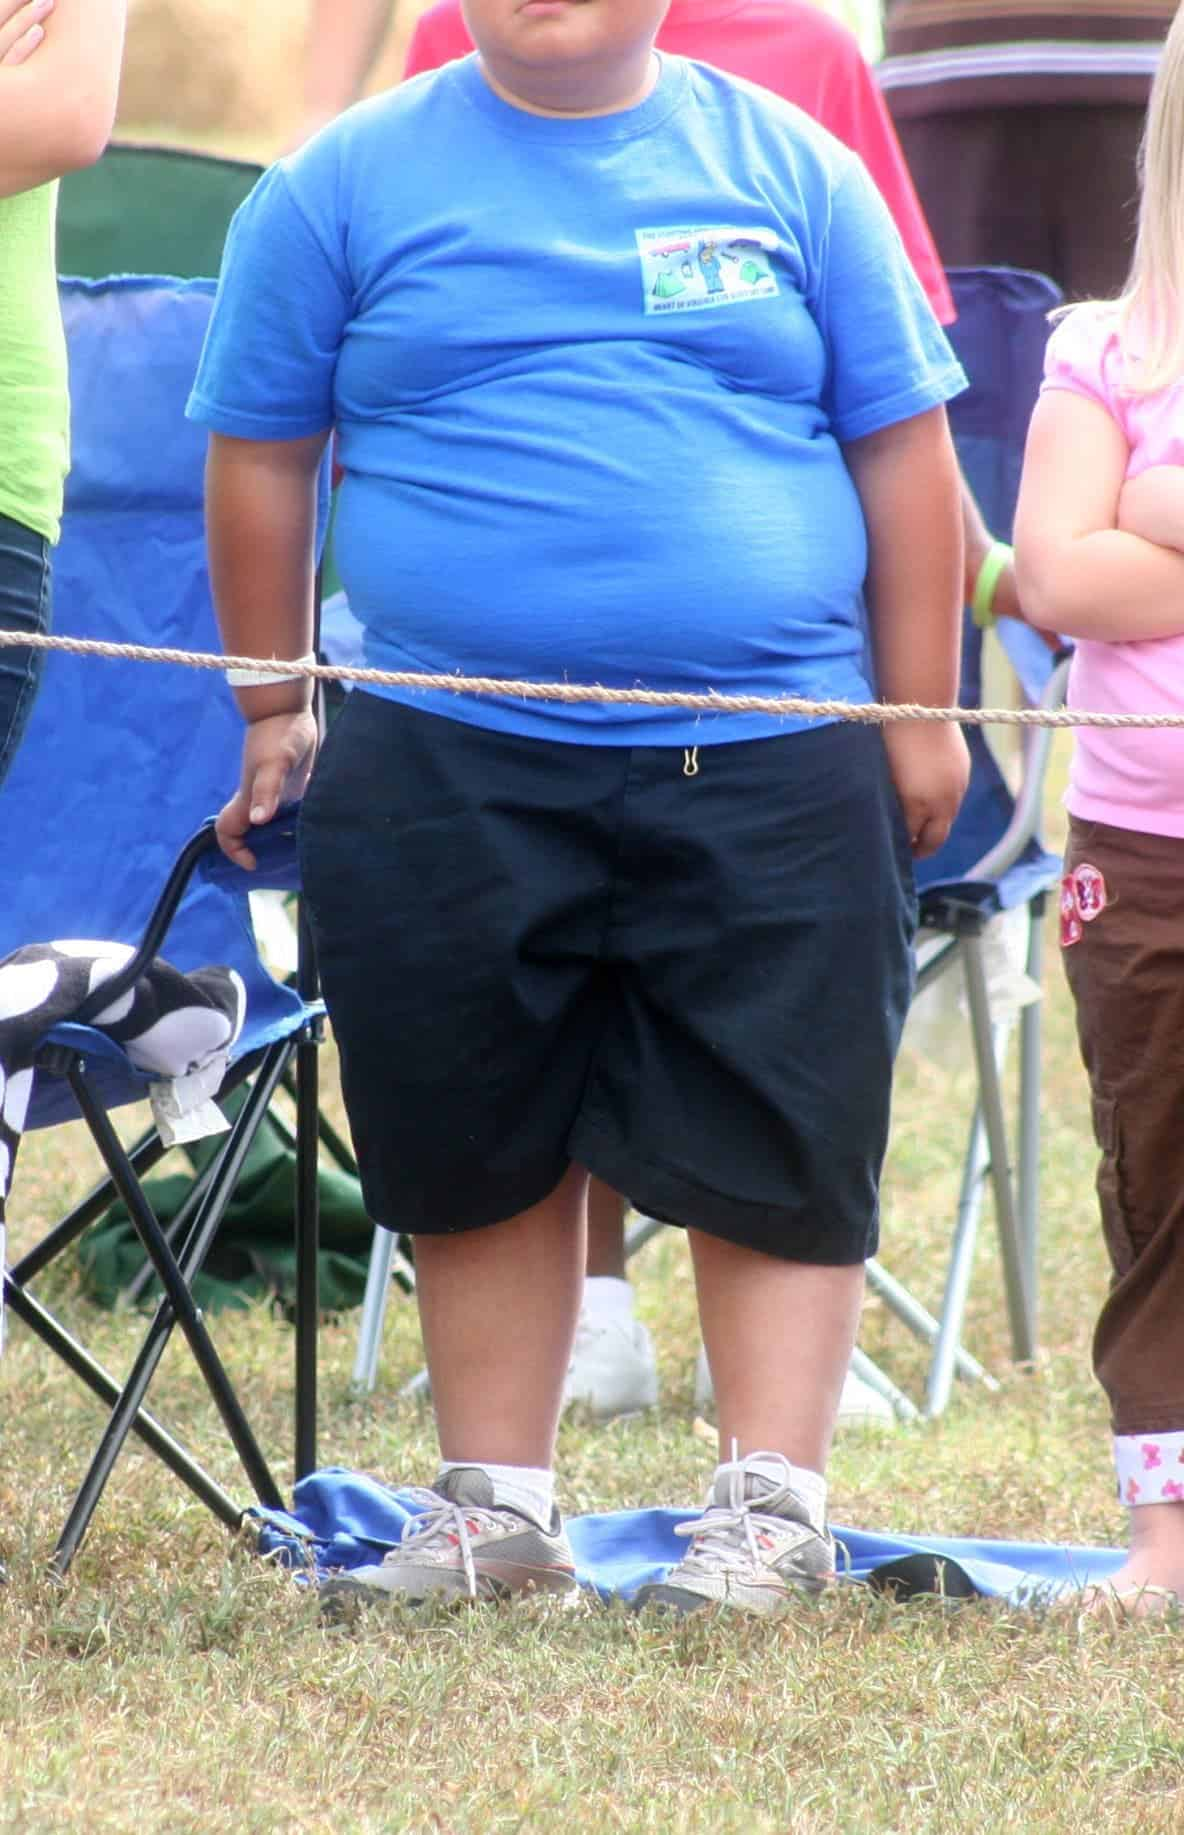 About Overweight and Obesity